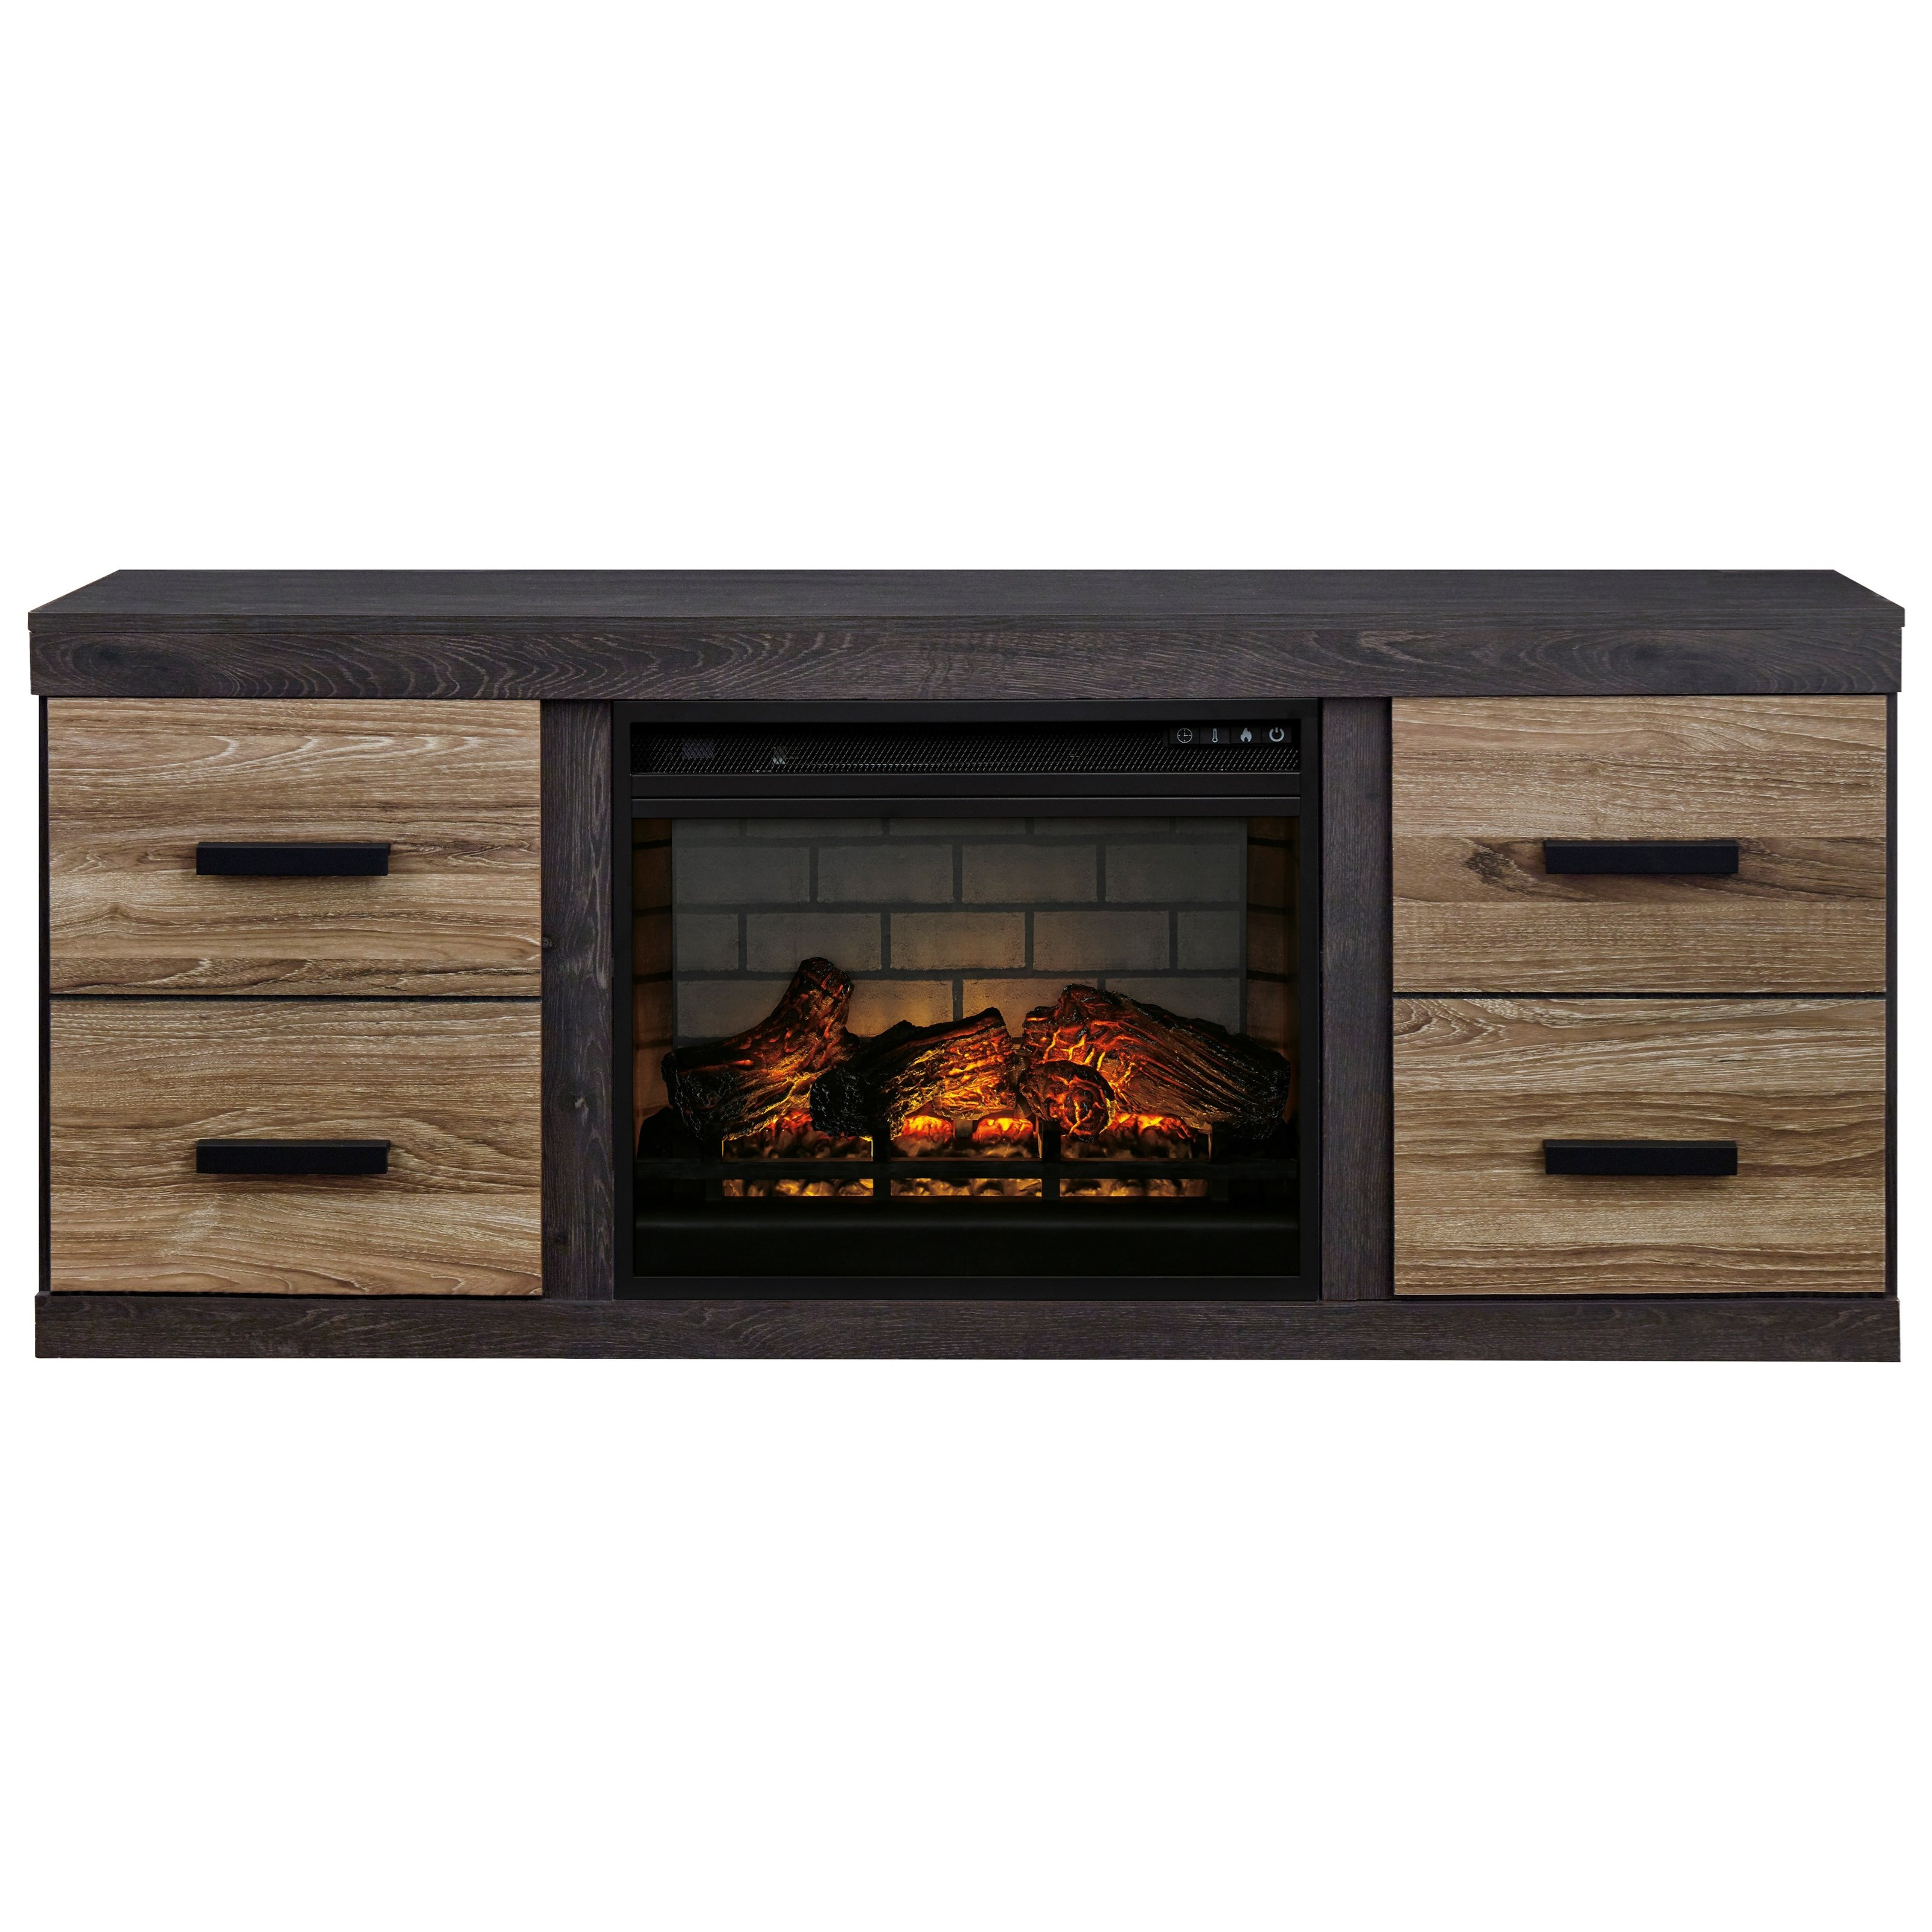 Harlinton Large TV Stand w/ Fireplace Insert by Signature Design by Ashley at Northeast Factory Direct